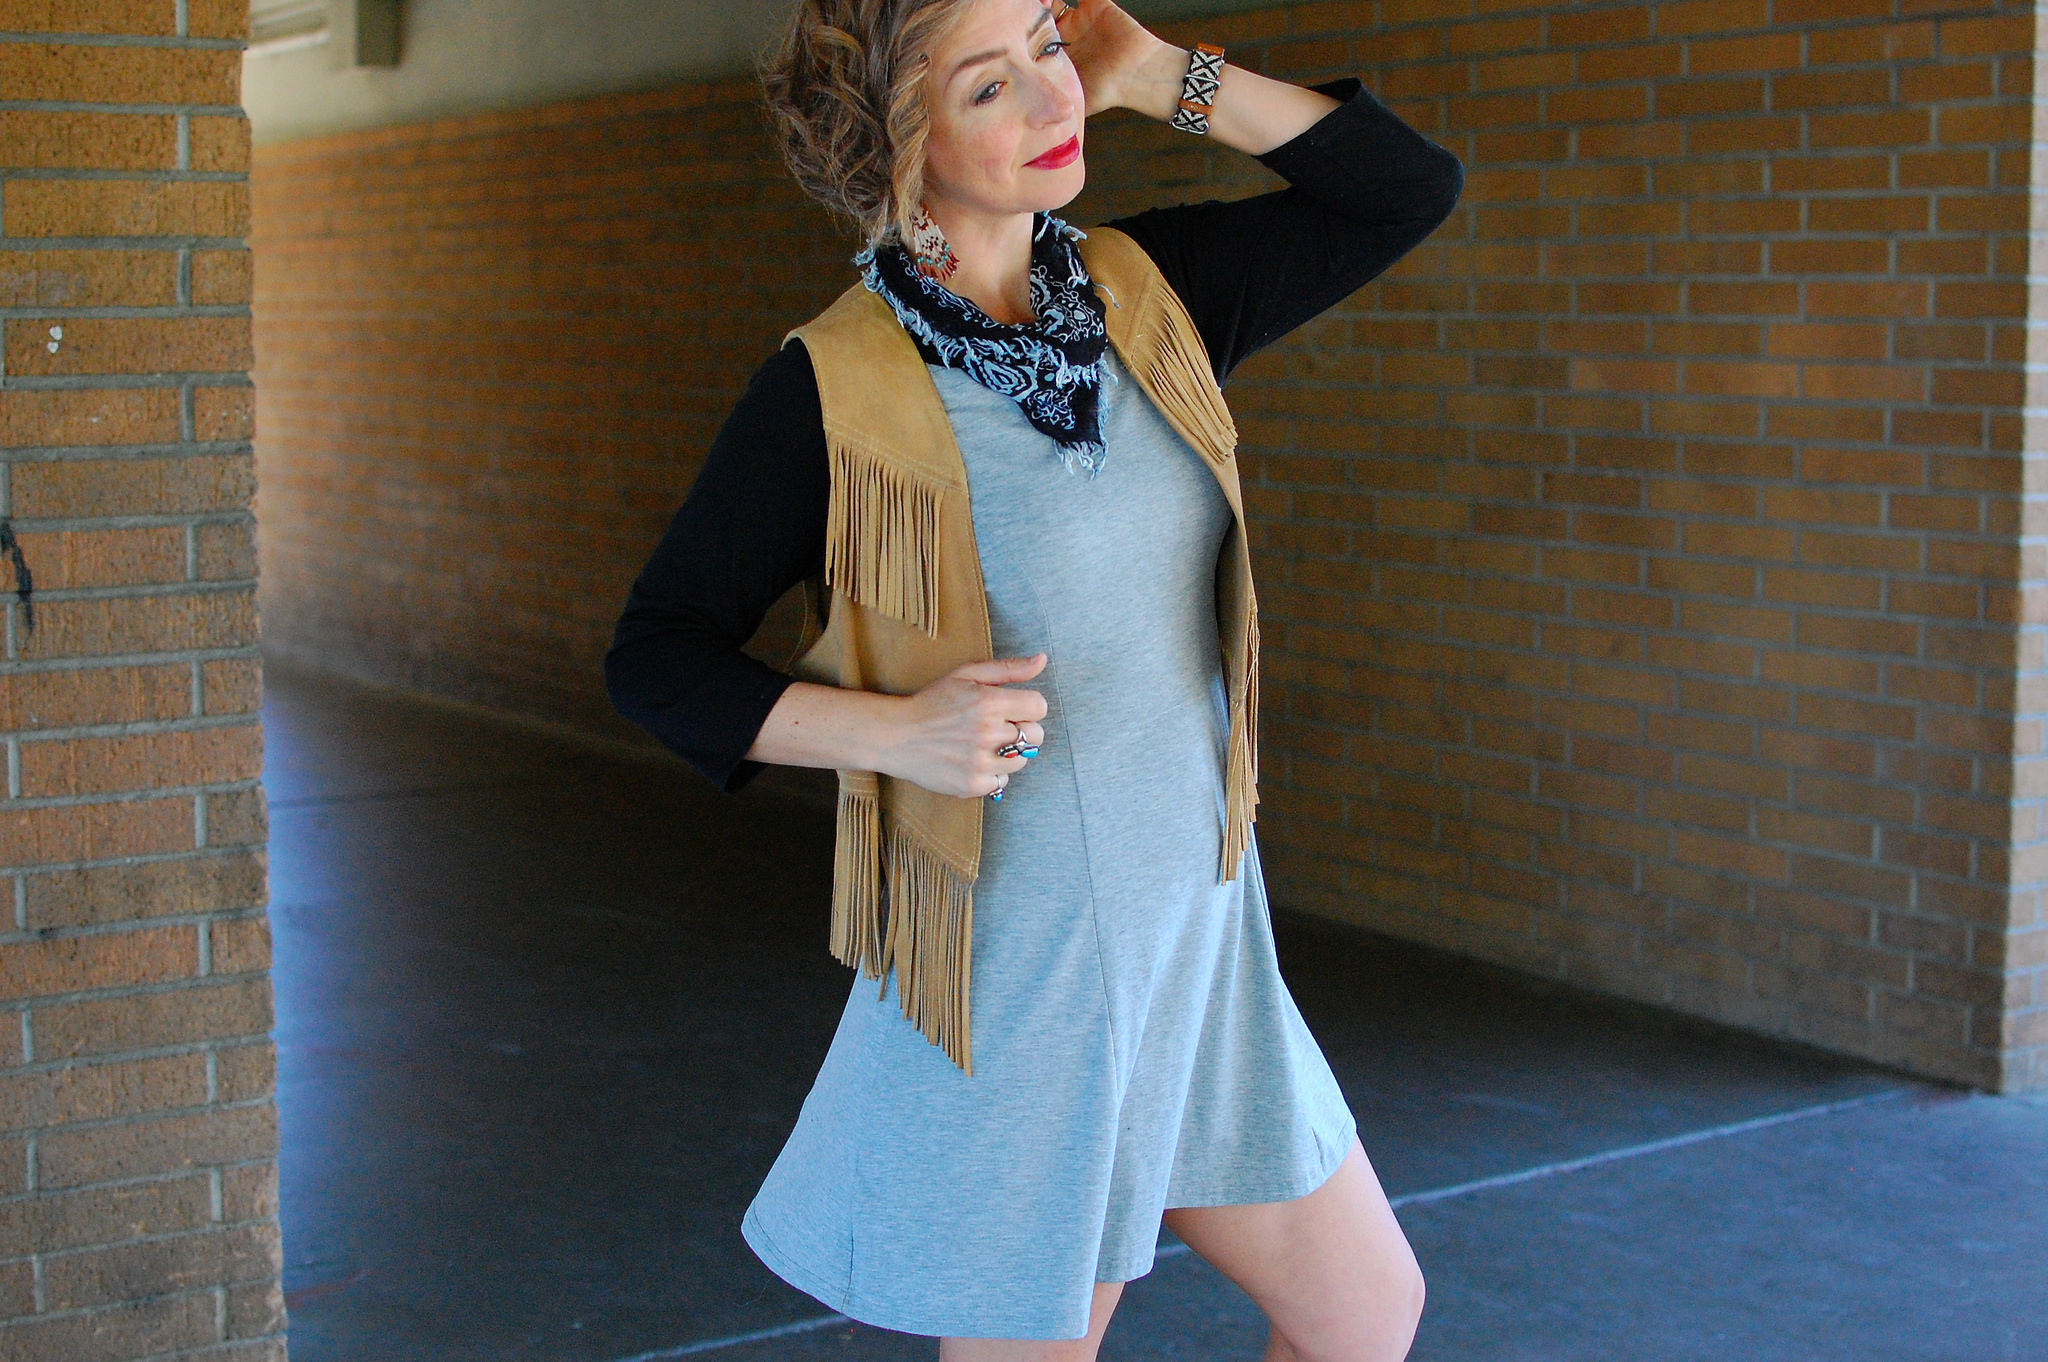 housewarming fringed suede vest ootd casual whatiwore2day